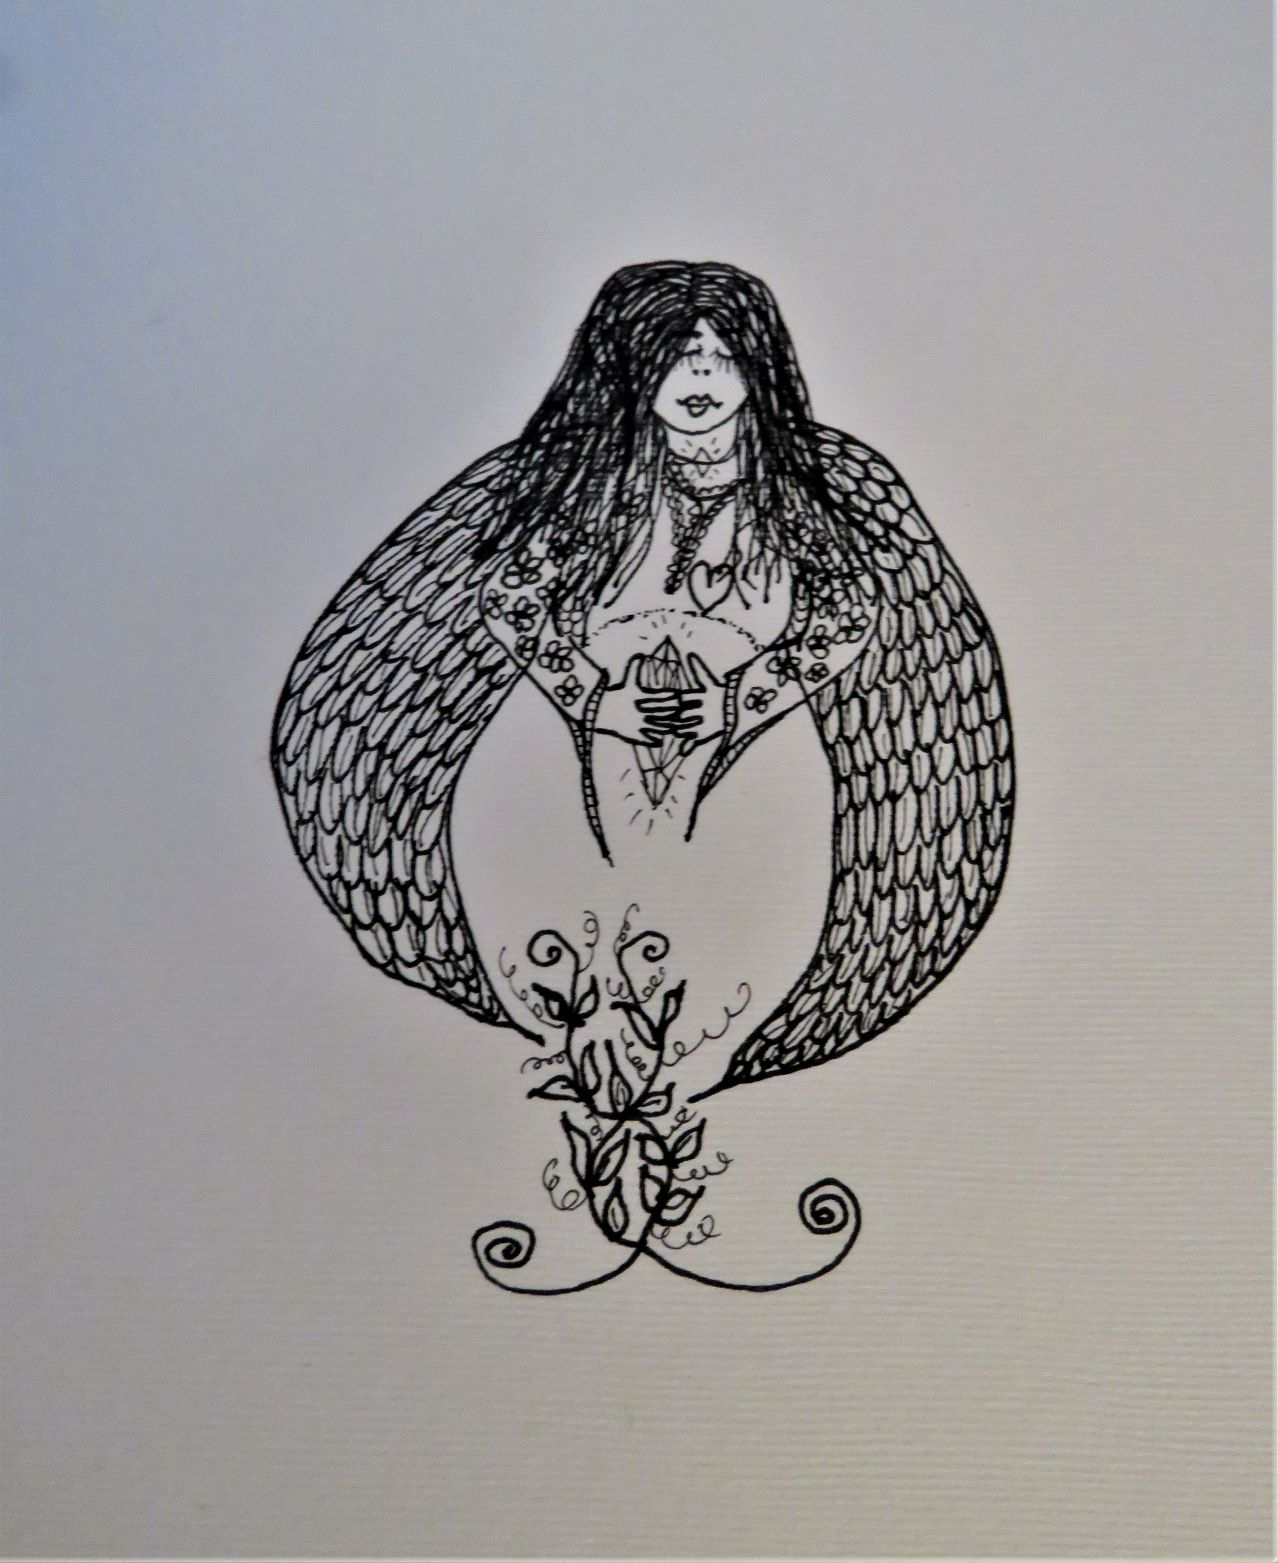 empress-gaia-pen-ink-marker-drawing-Eithne-Warren-https://insideheartspace.com